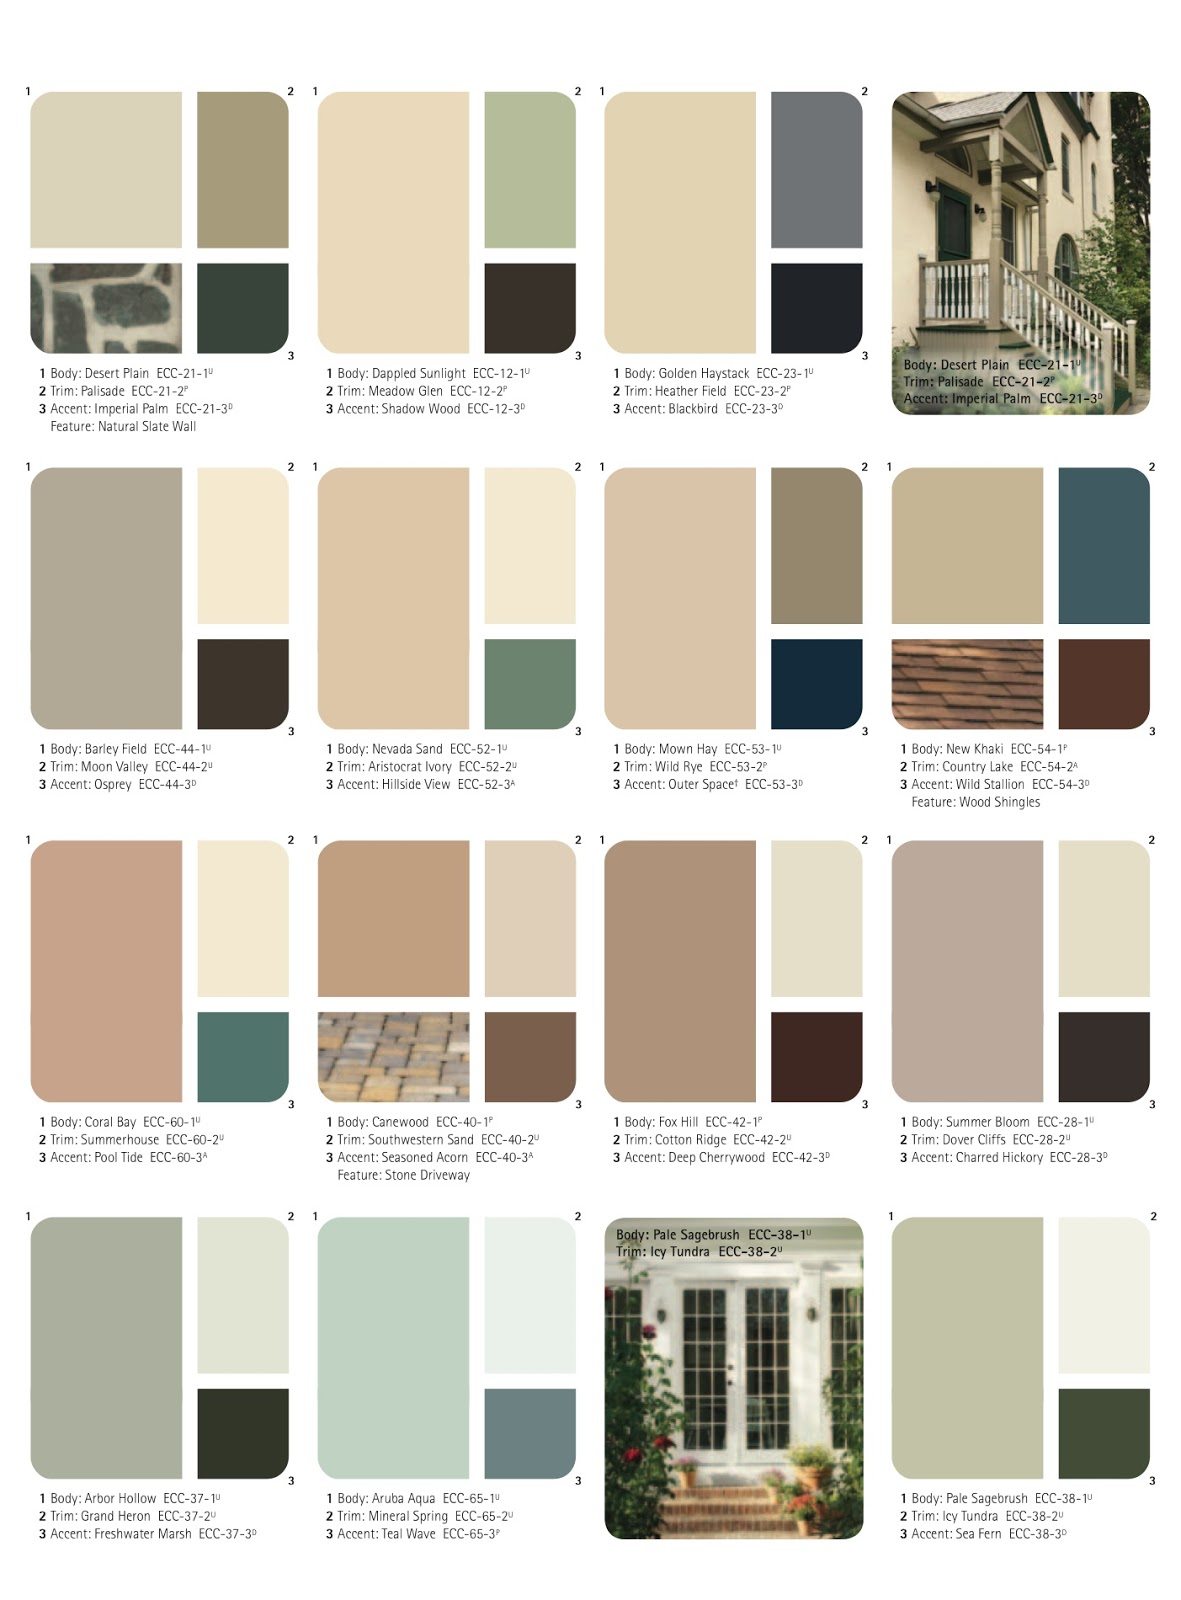 Home depot house paint home painting ideas for Exterior paint colors images